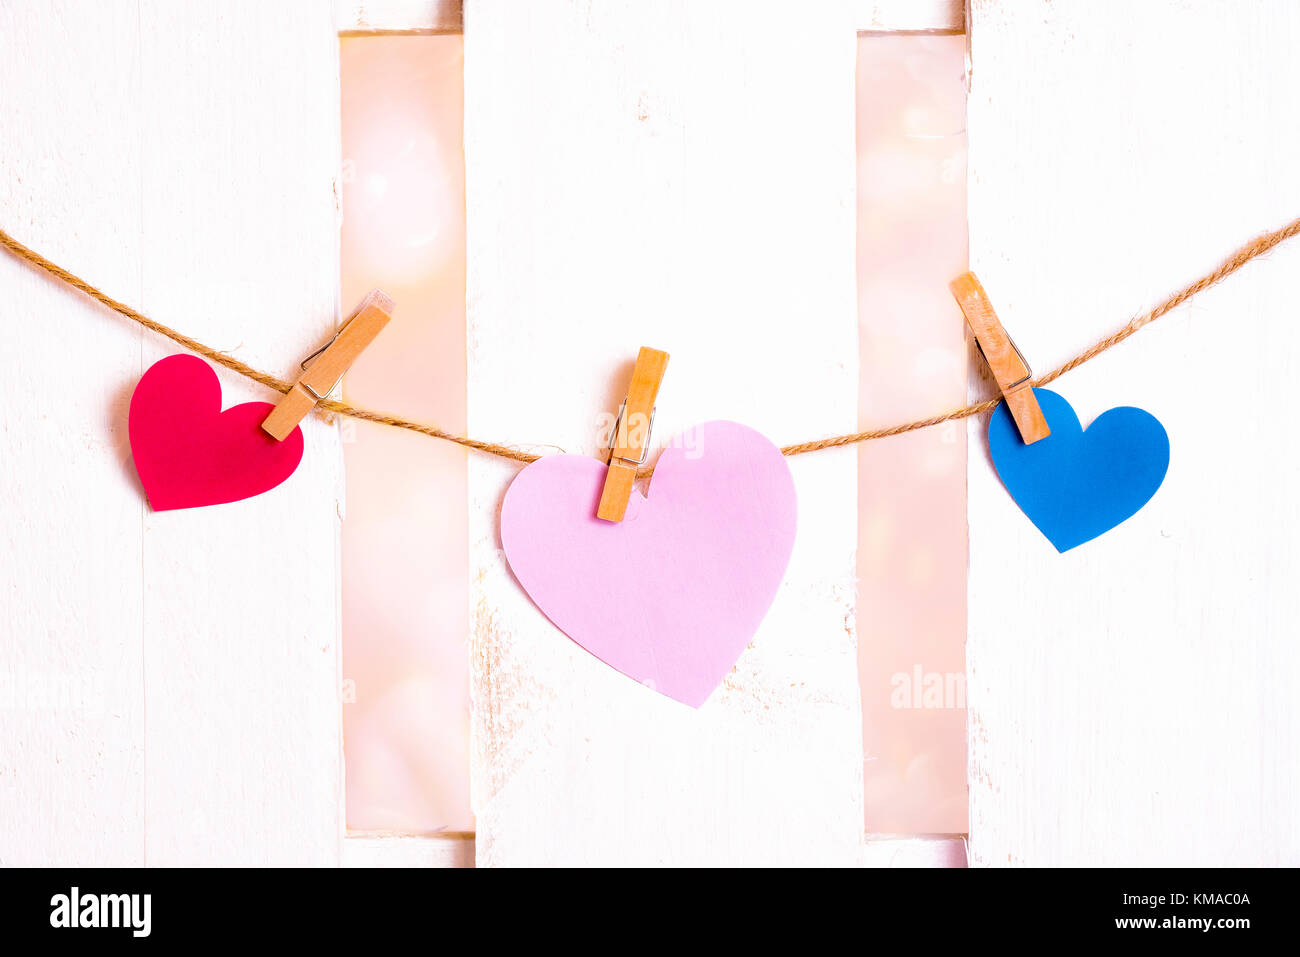 Valentine's day image with one big pink heart in the middle, one red and one blue on the sides, made from paper and tied to a string with wooden clips Stock Photo